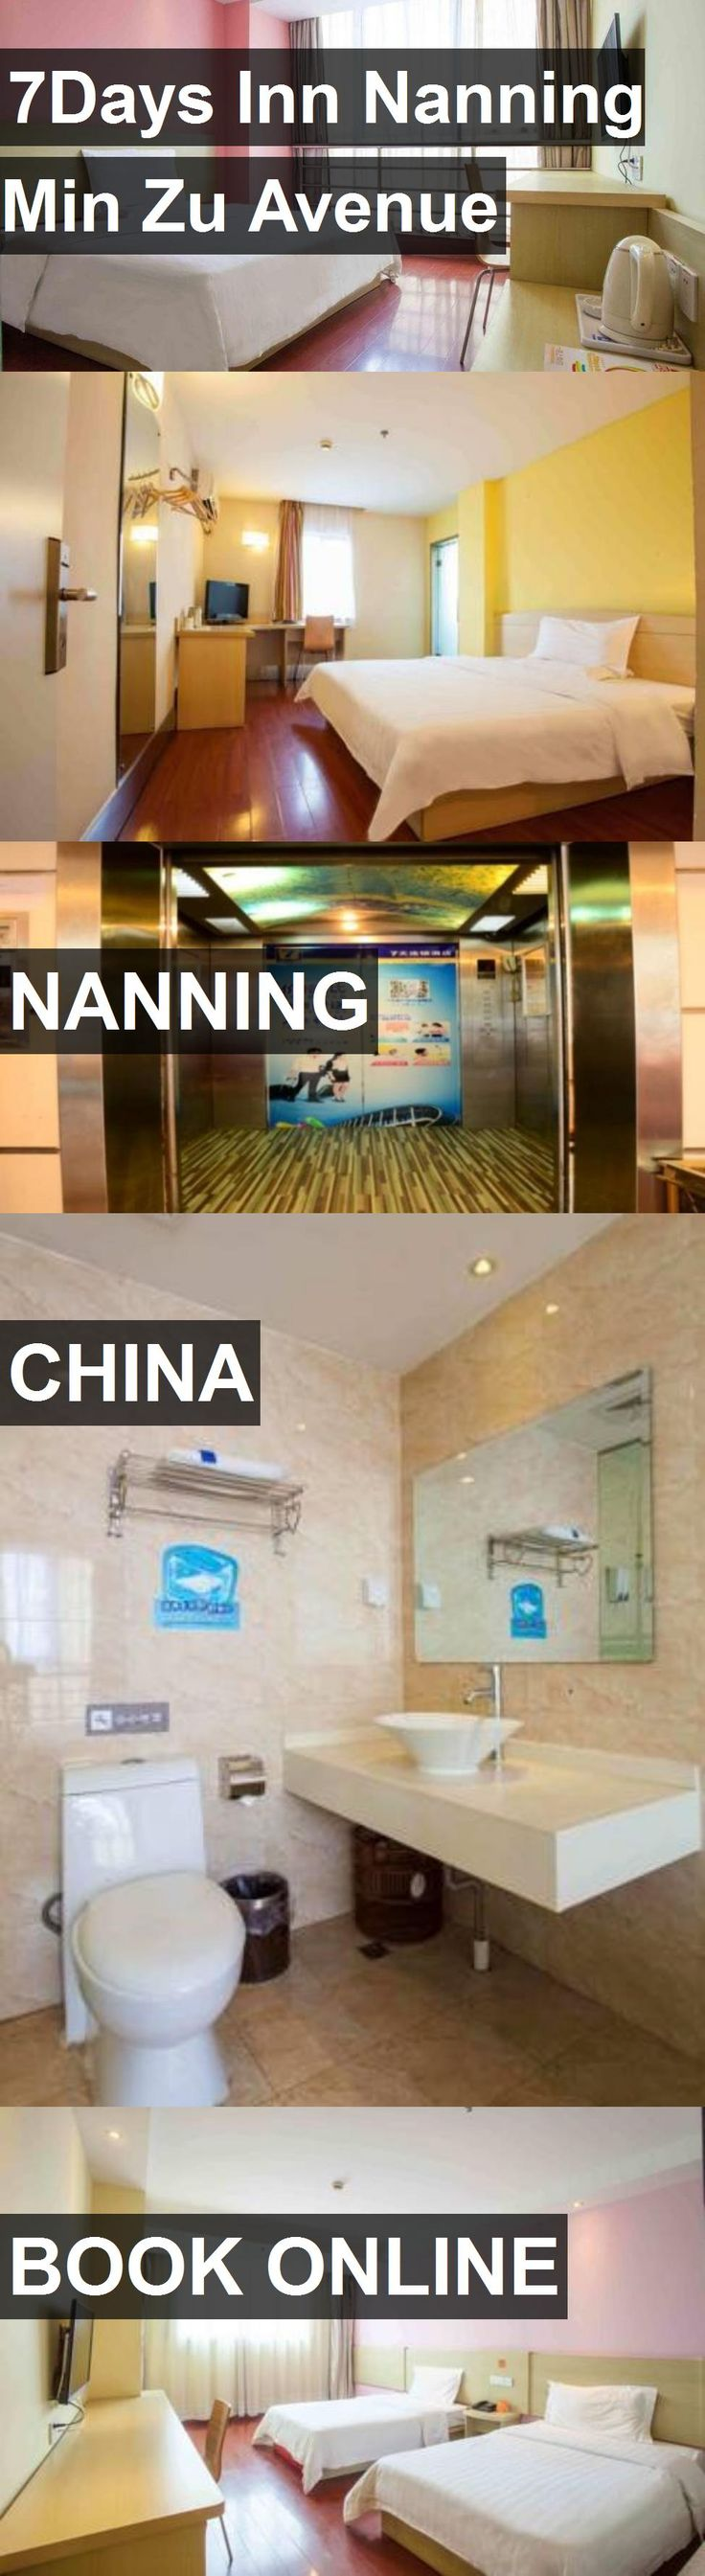 Hotel 7Days Inn Nanning Min Zu Avenue in Nanning, China. For more information, photos, reviews and best prices please follow the link. #China #Nanning #travel #vacation #hotel